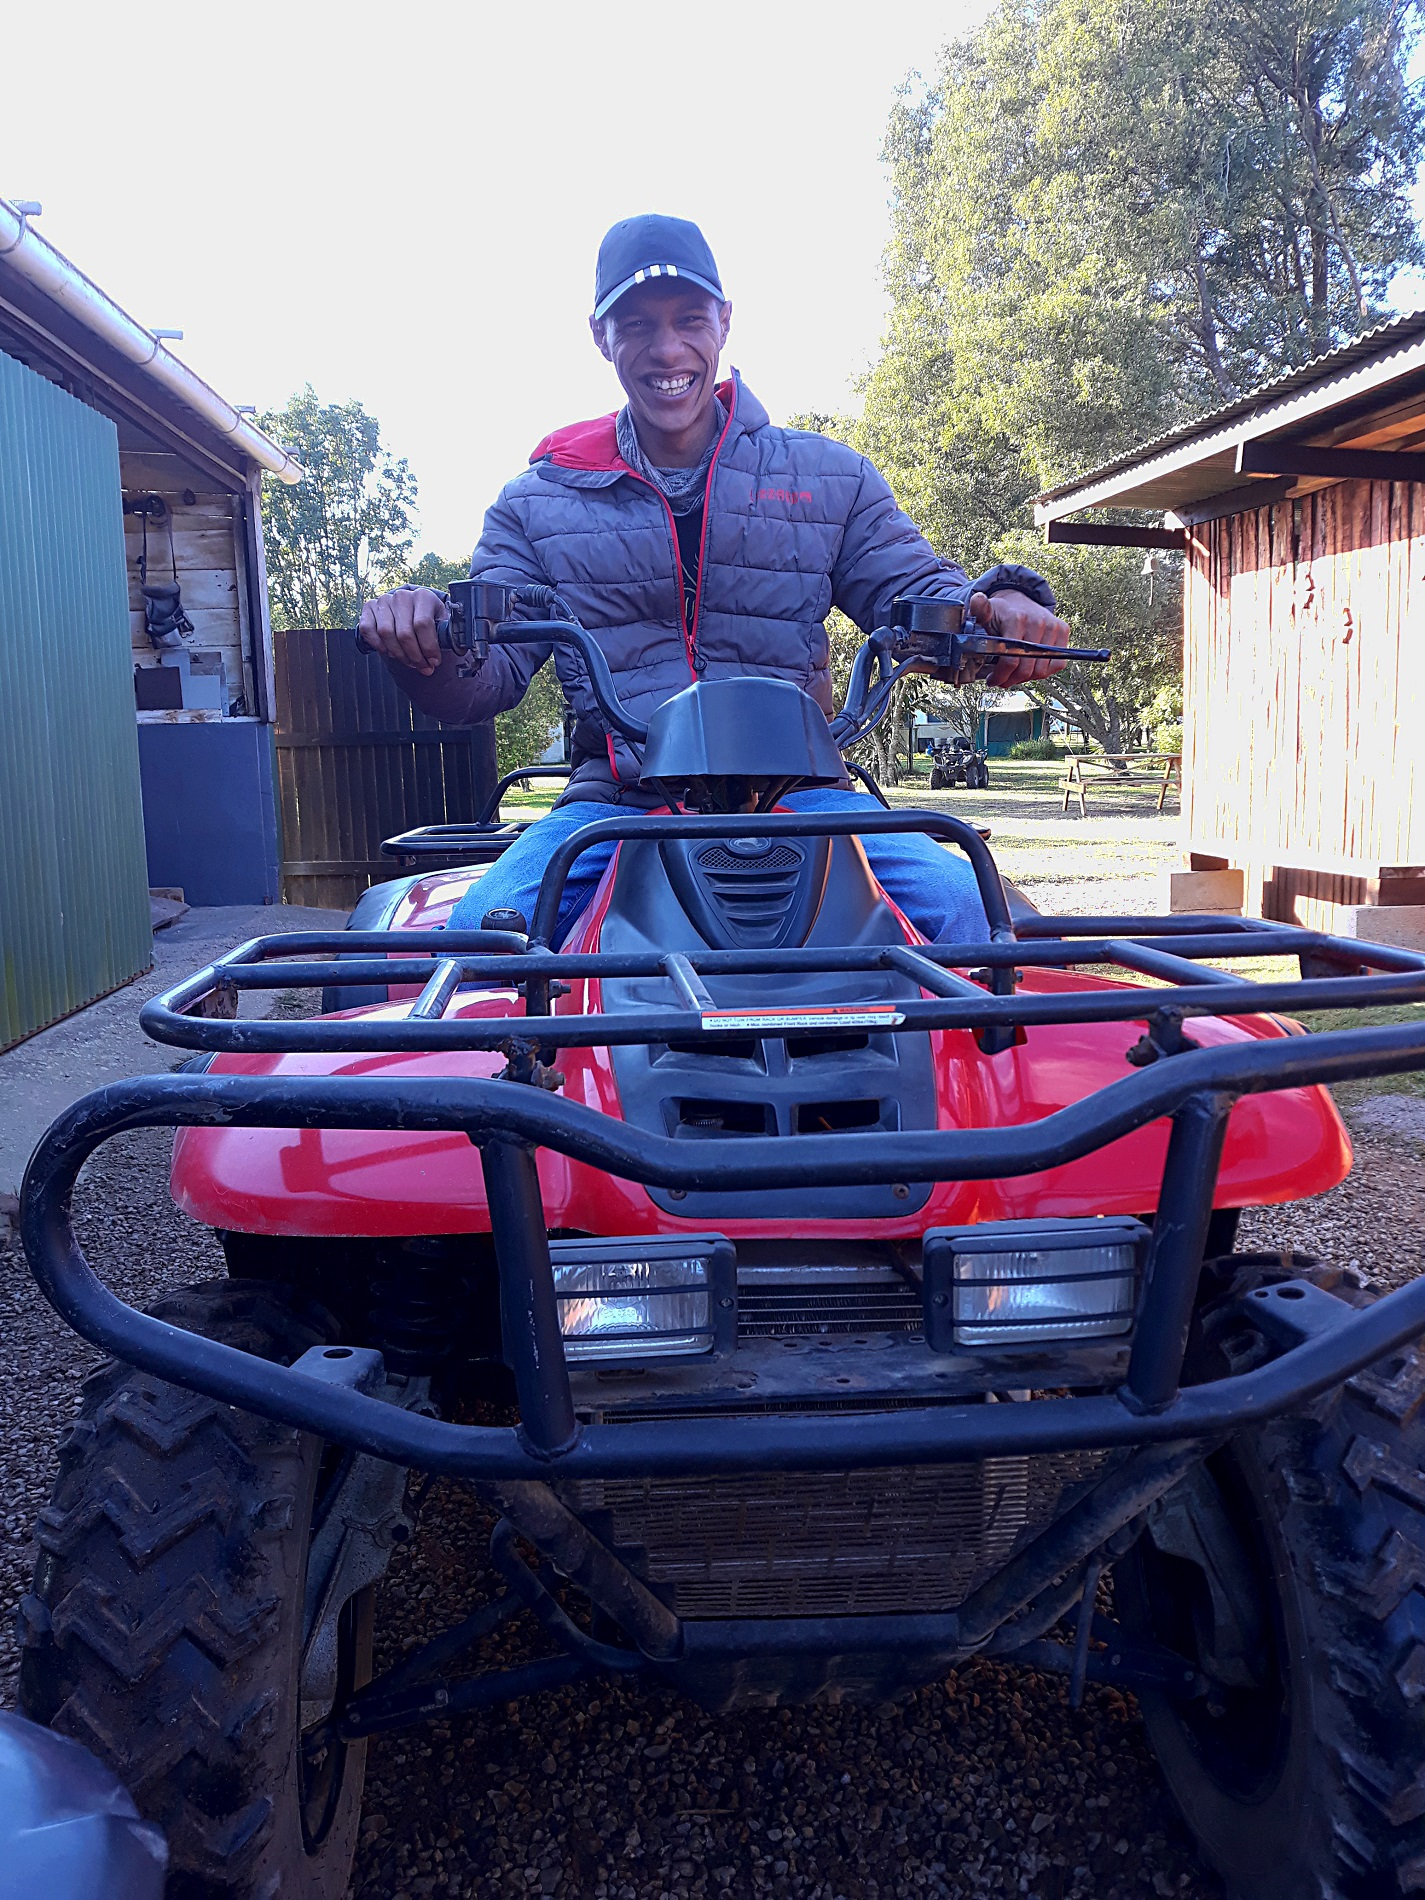 Quadbiking in the Gardenroute